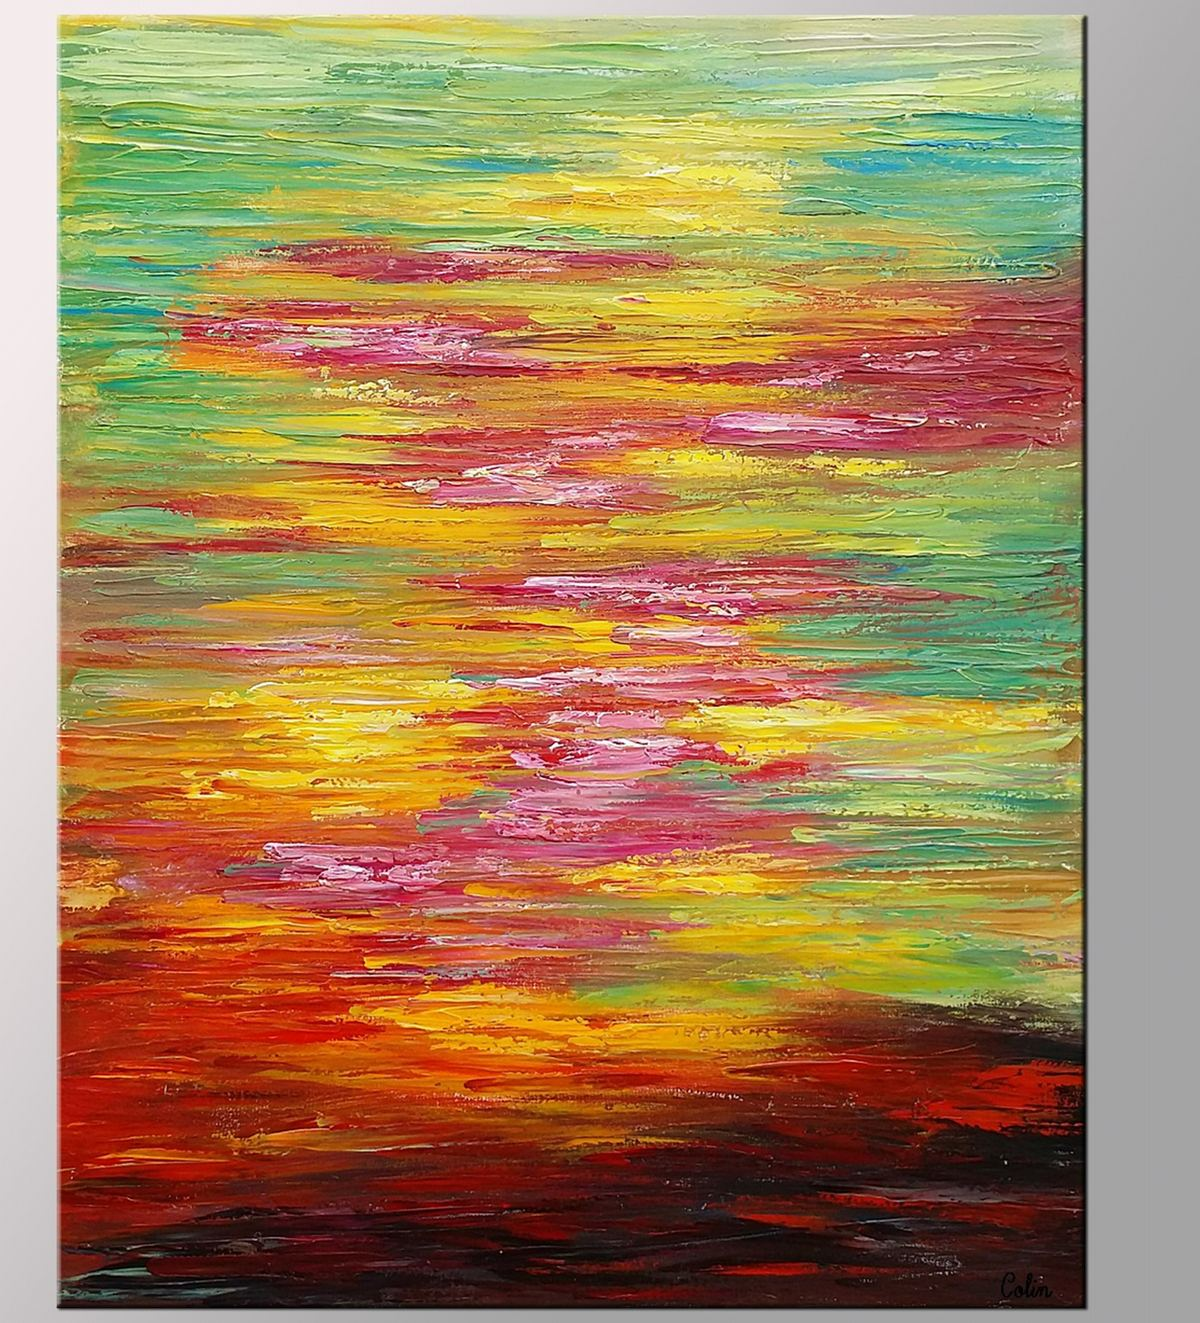 Abstract Landscape Painting, Original Wall Art, Abstract Art, Large Art, Canvas Art, Wall Art, Original Artwork, Heavy Texture, 380